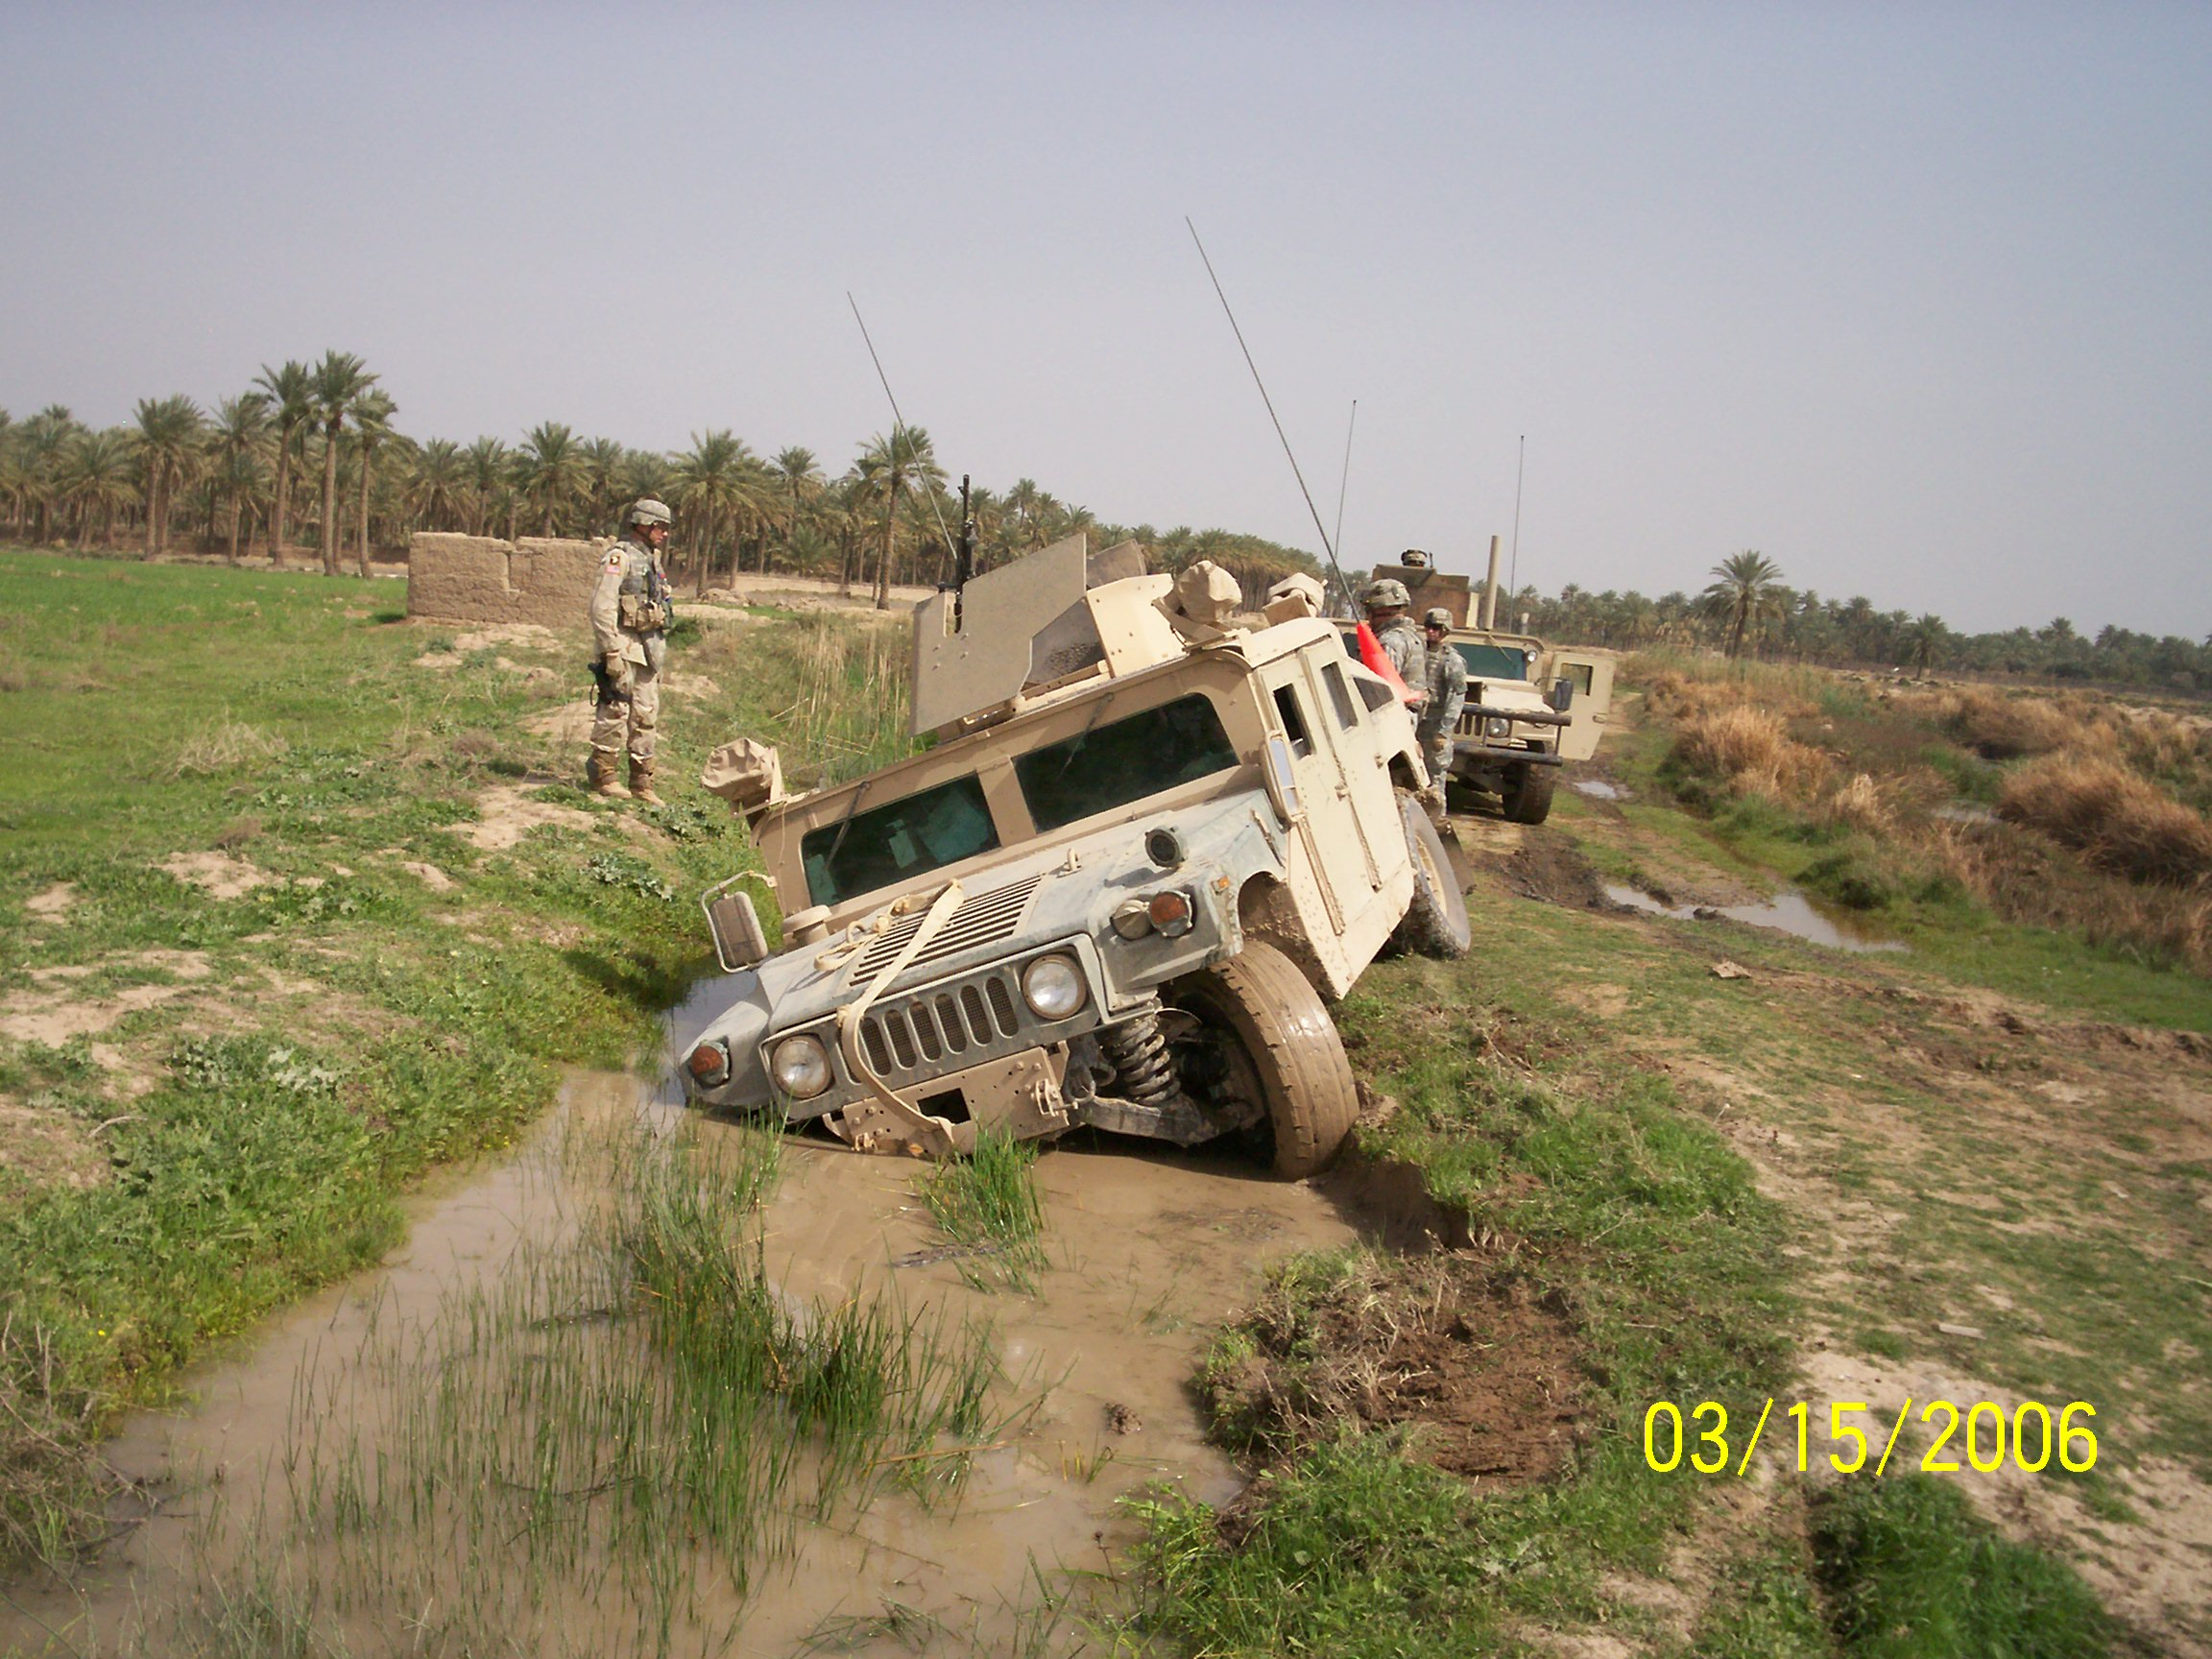 Fully armored Humvees weigh 10,000 pounds or more. They can easily get stuck in the mud and make for a very long and miserable day. Here is such a day.